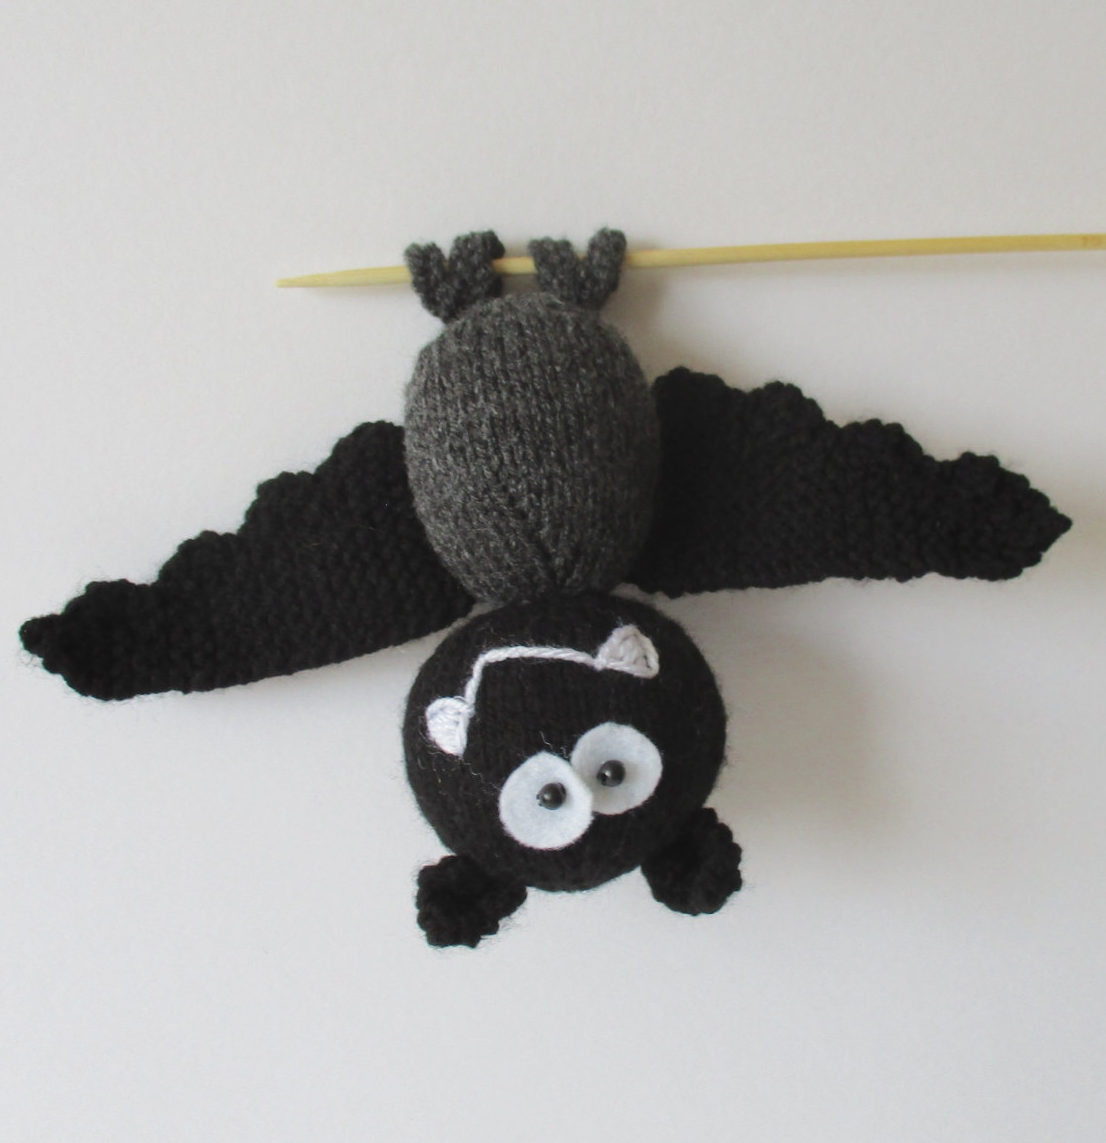 Knitting Pattern for Billy the Bat